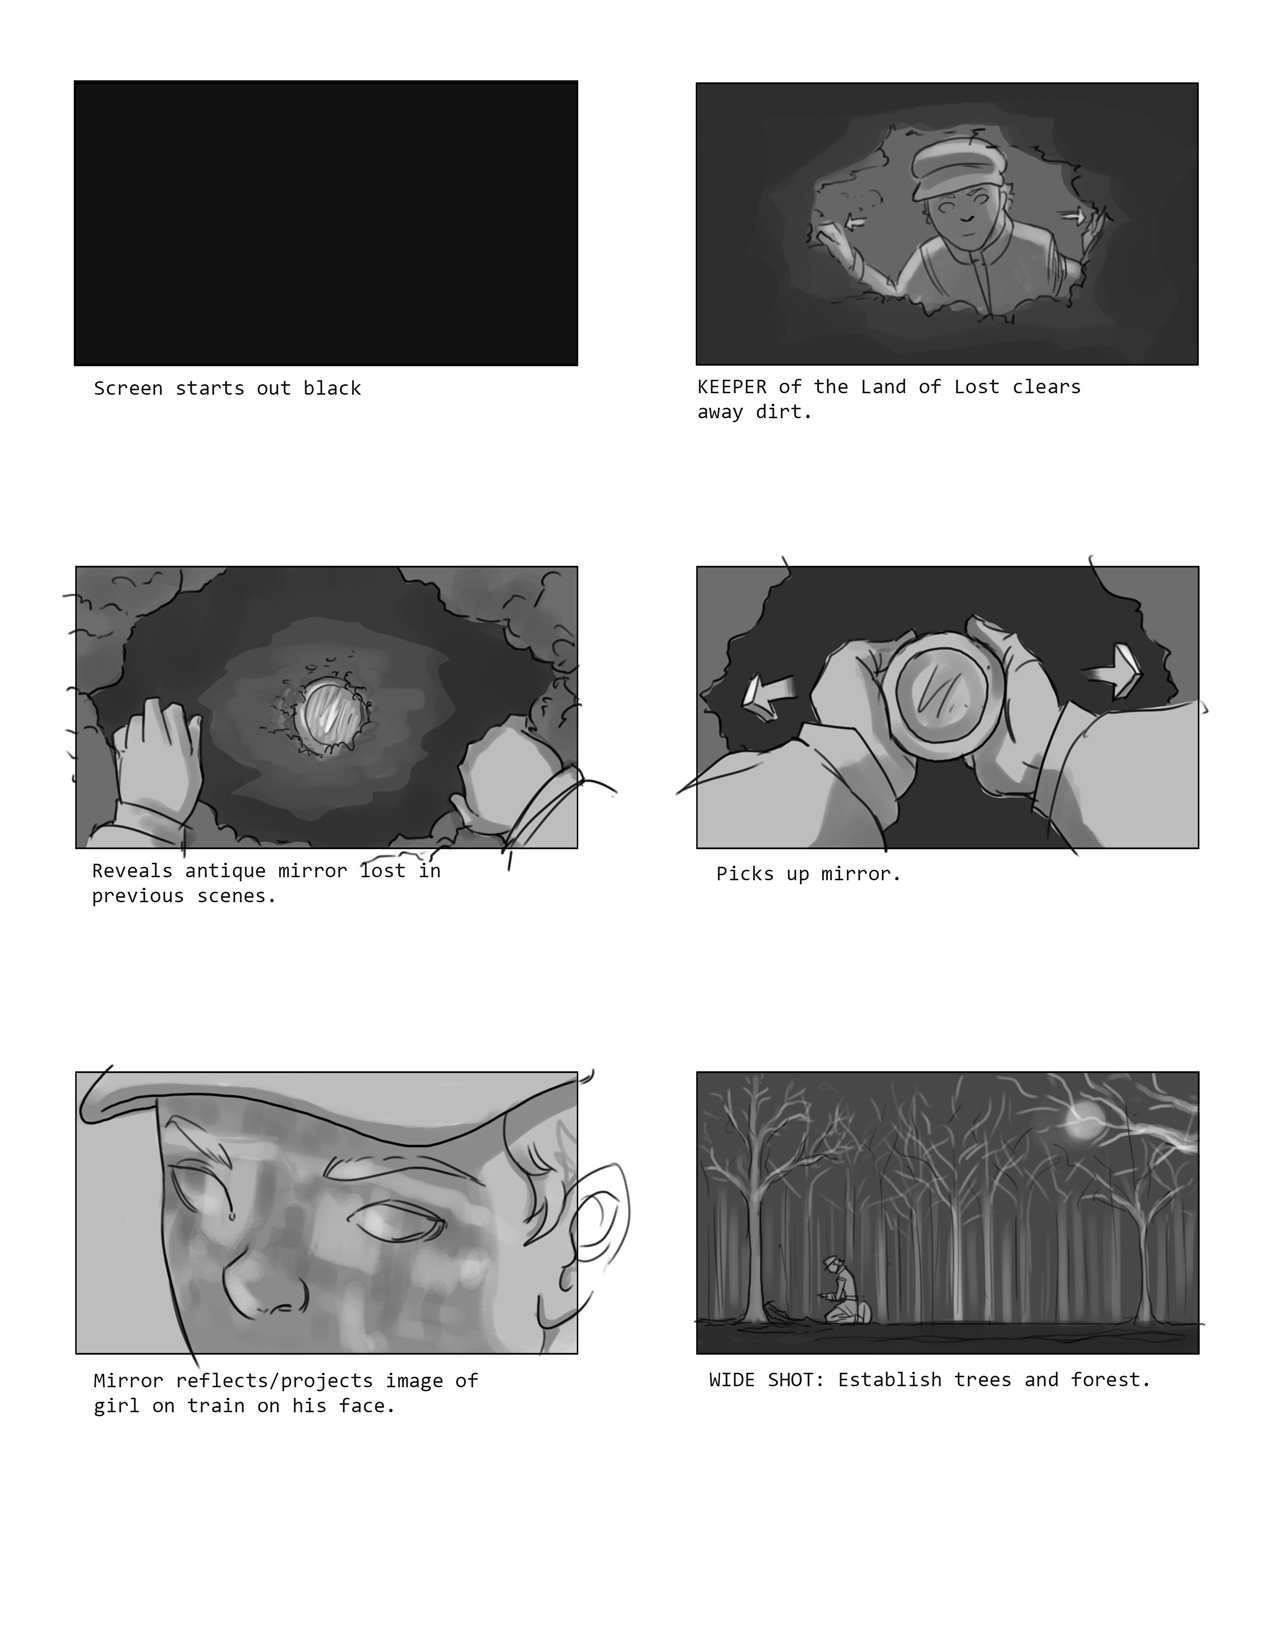 velorenstoryboards01.jpg